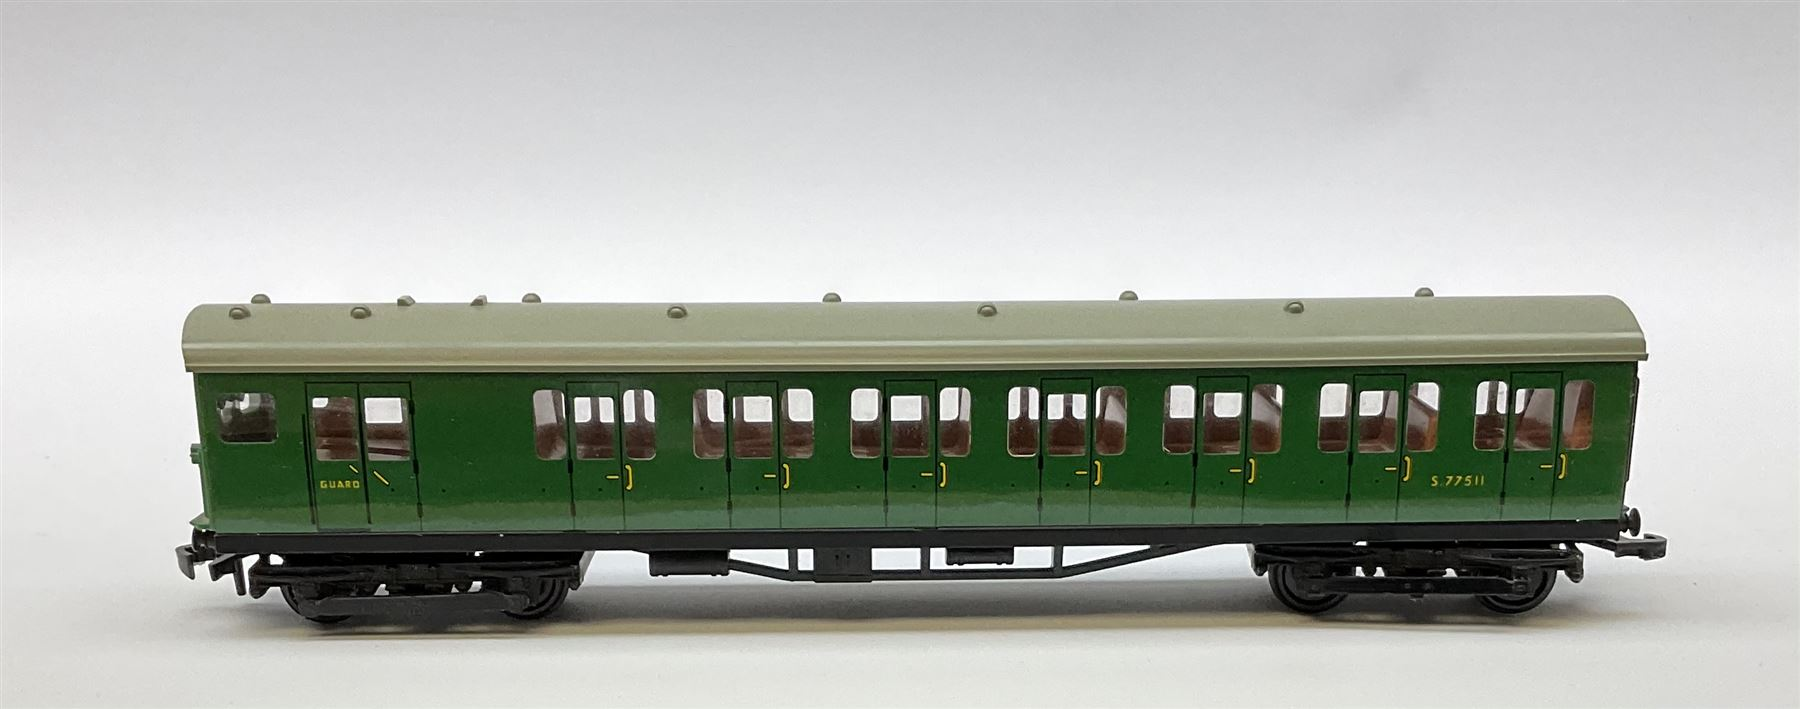 Hornby Dublo - 4076 Six- Wheeled Passenger Brake Van; and 4150 Electric Driving Trailer Coach S.R.; - Image 2 of 4